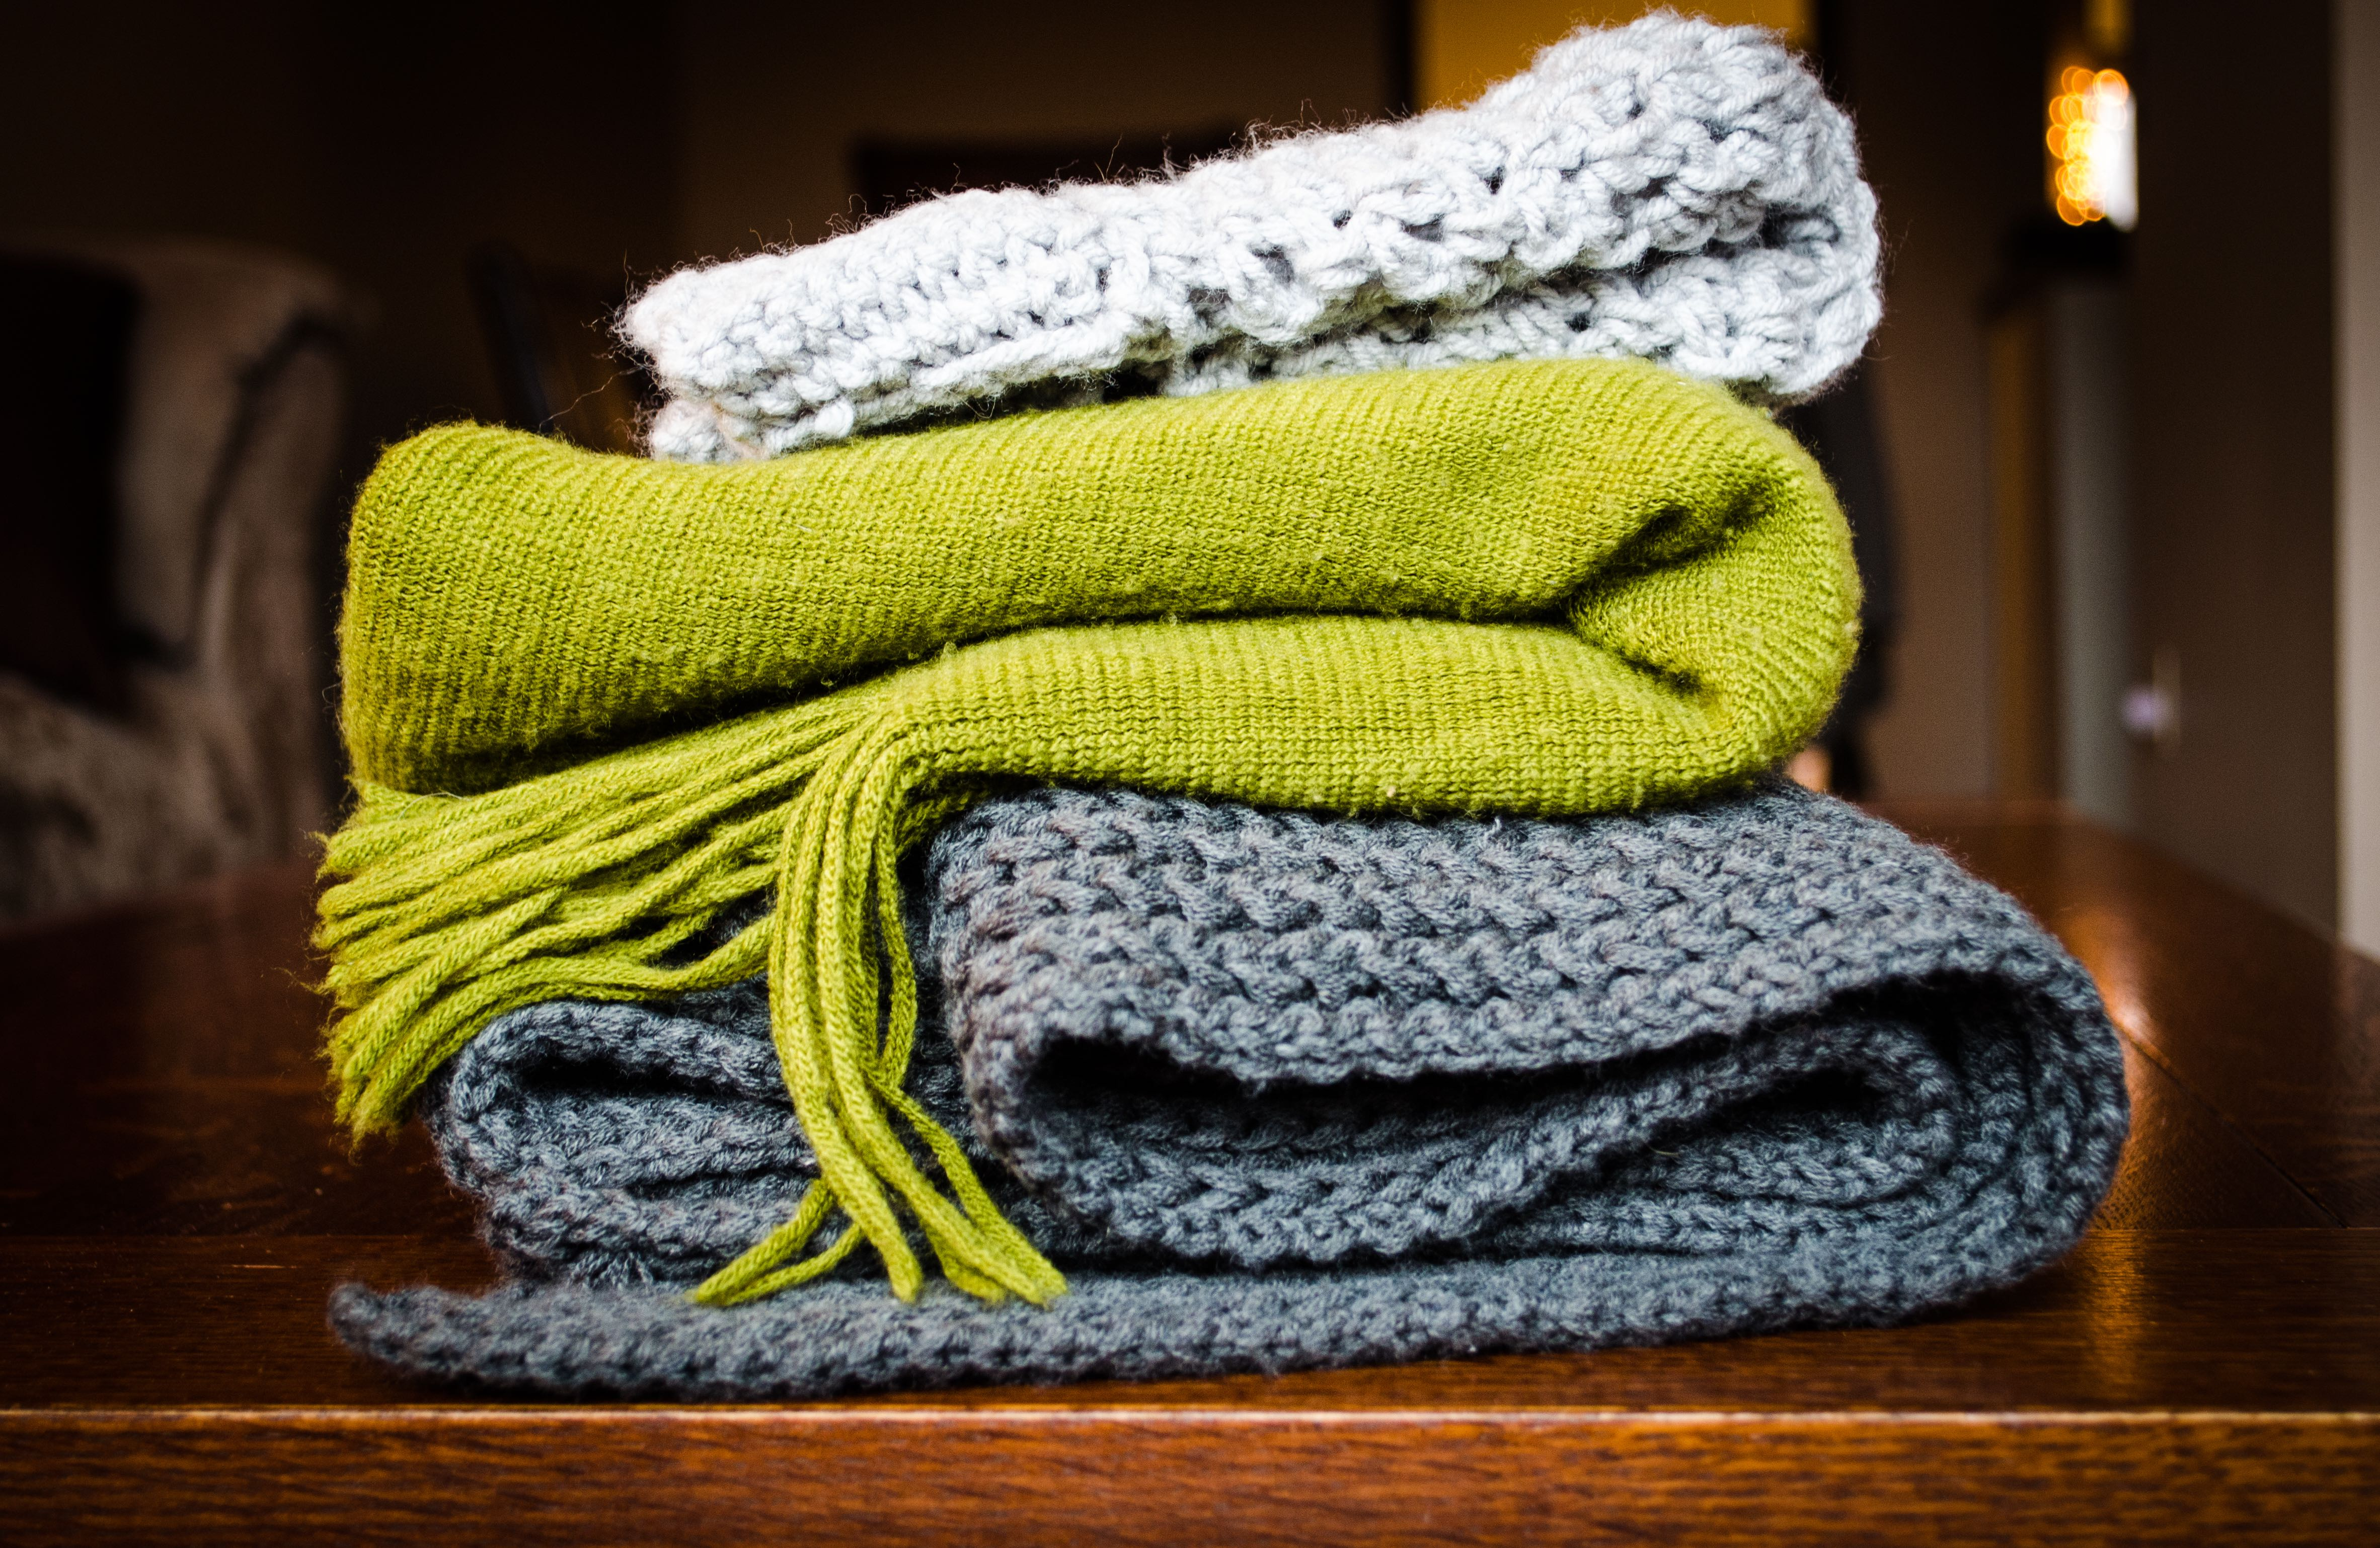 Photo a colorful stack of scarves and blankets